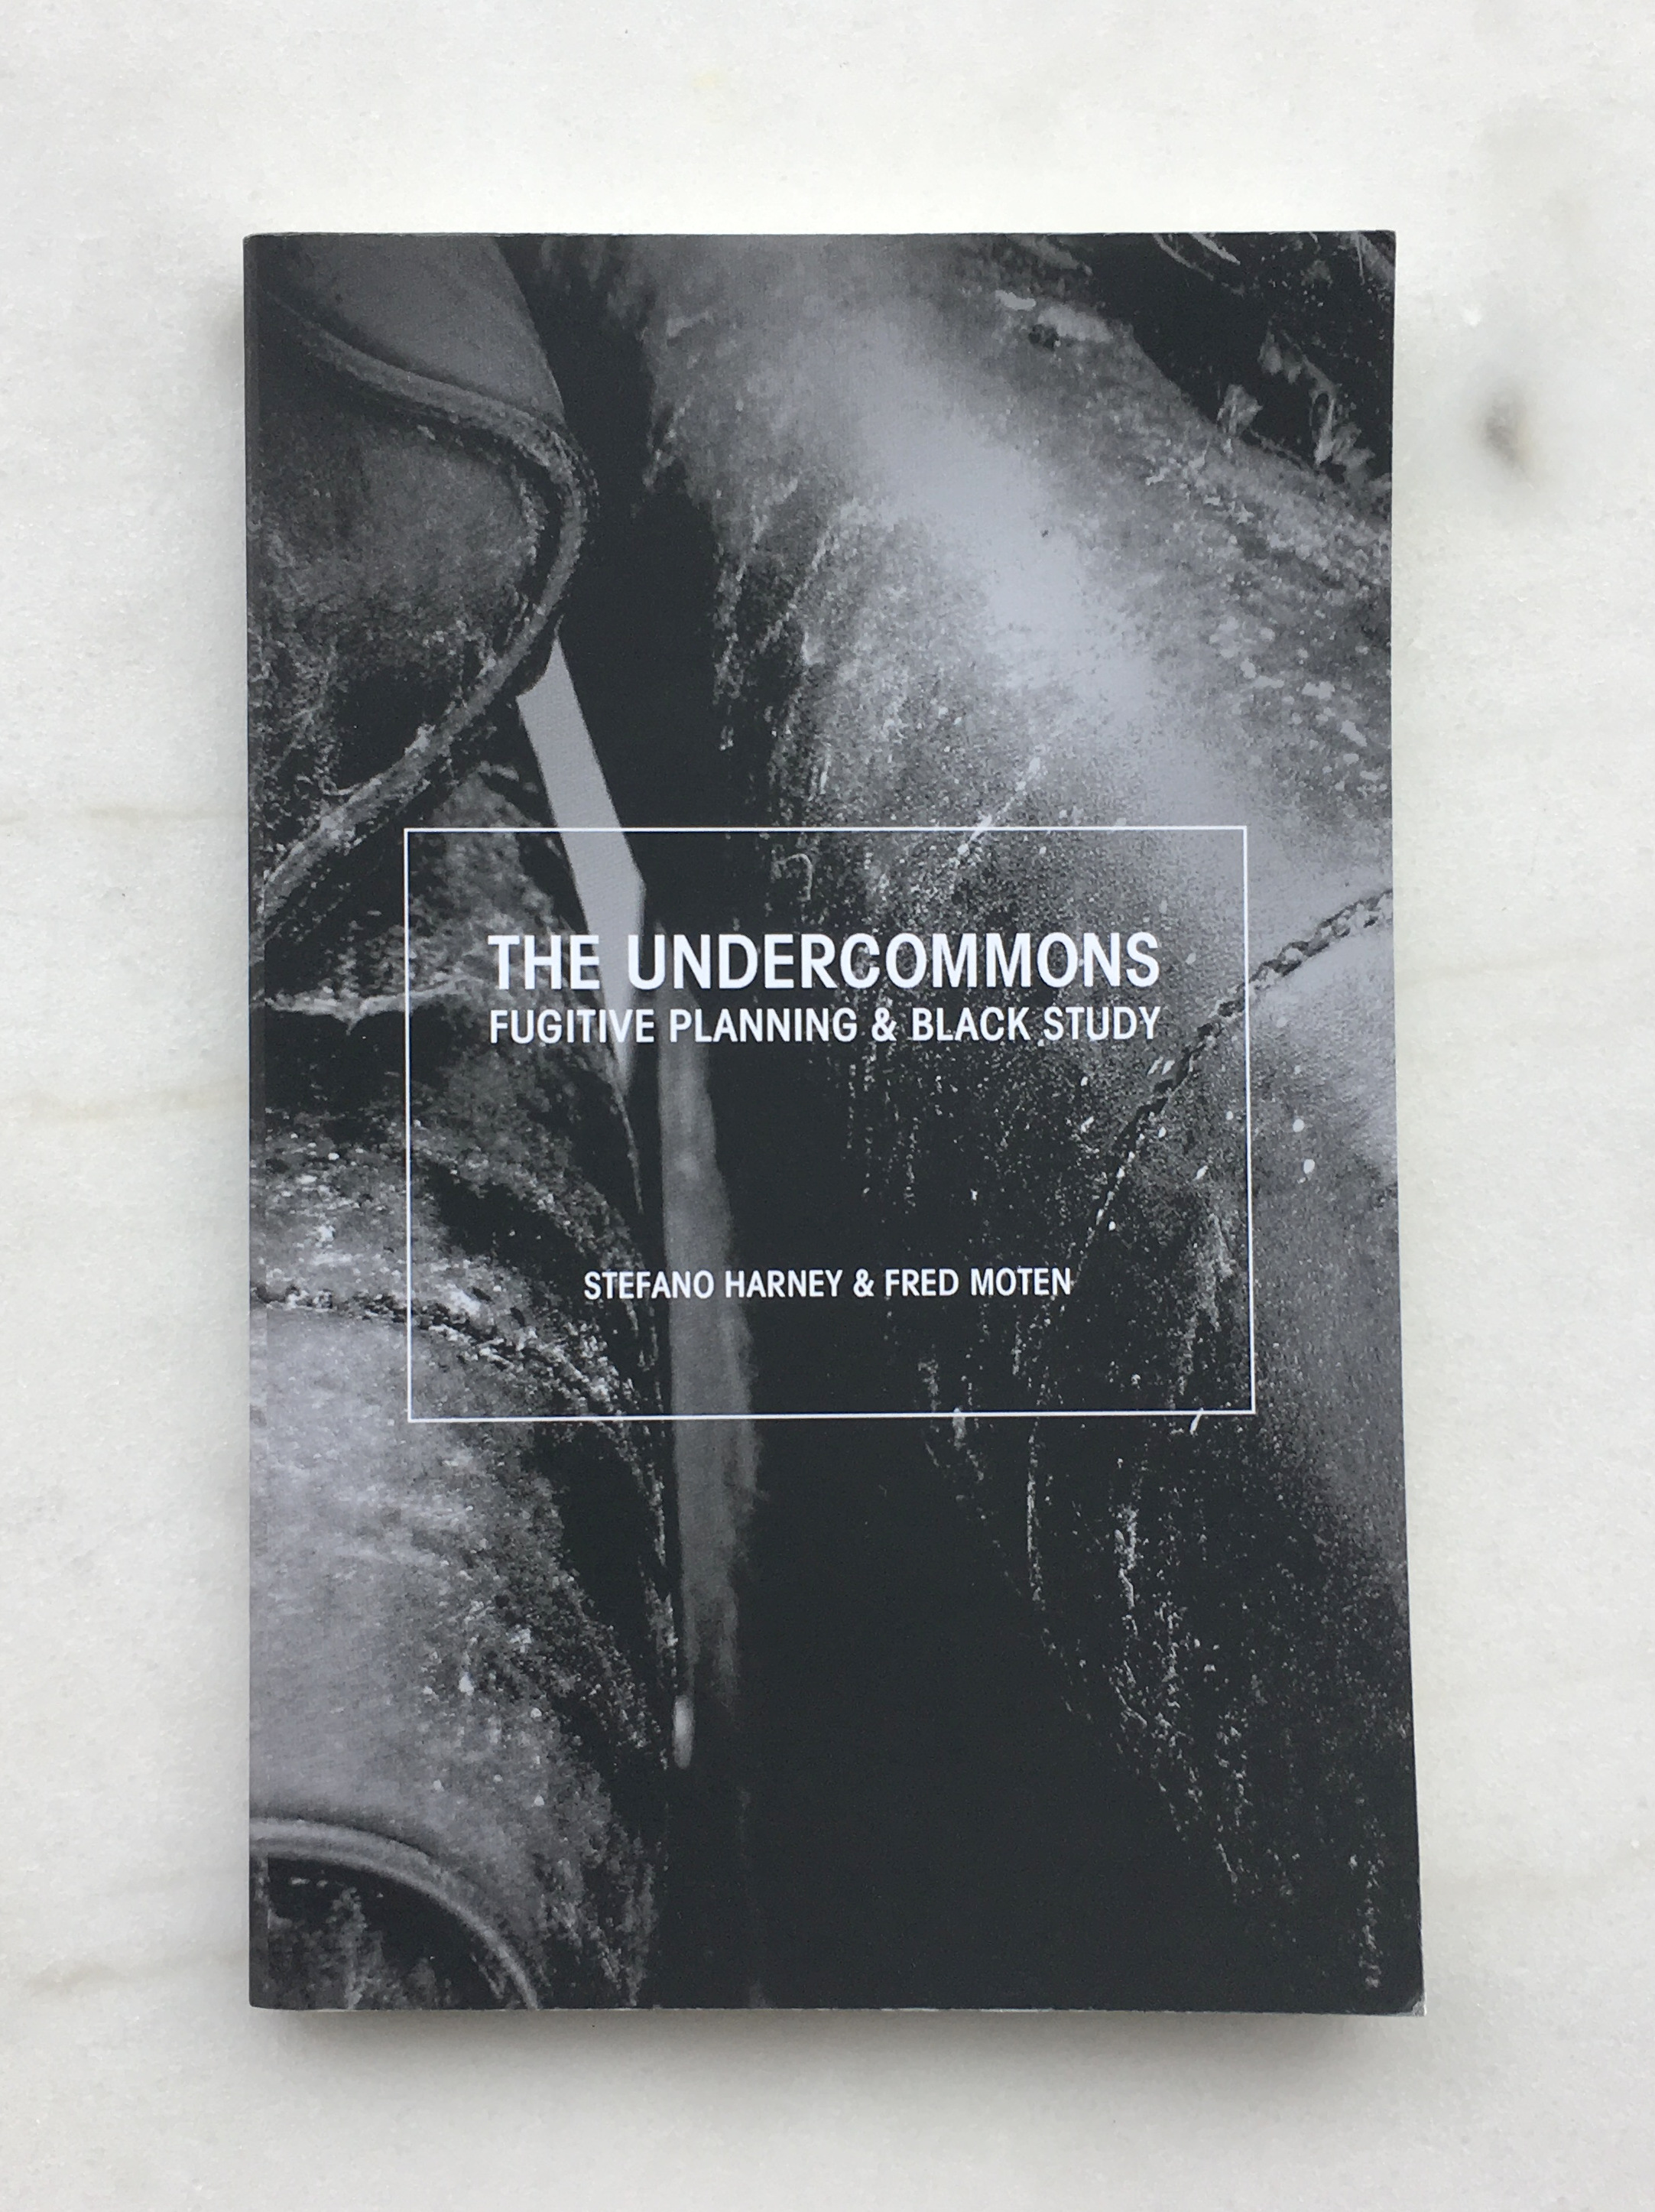 The Undercommons: Fugitive Planning and Black Study , by Fred Moten and Stefano Harney (New York: Minor Compositions, 2013).